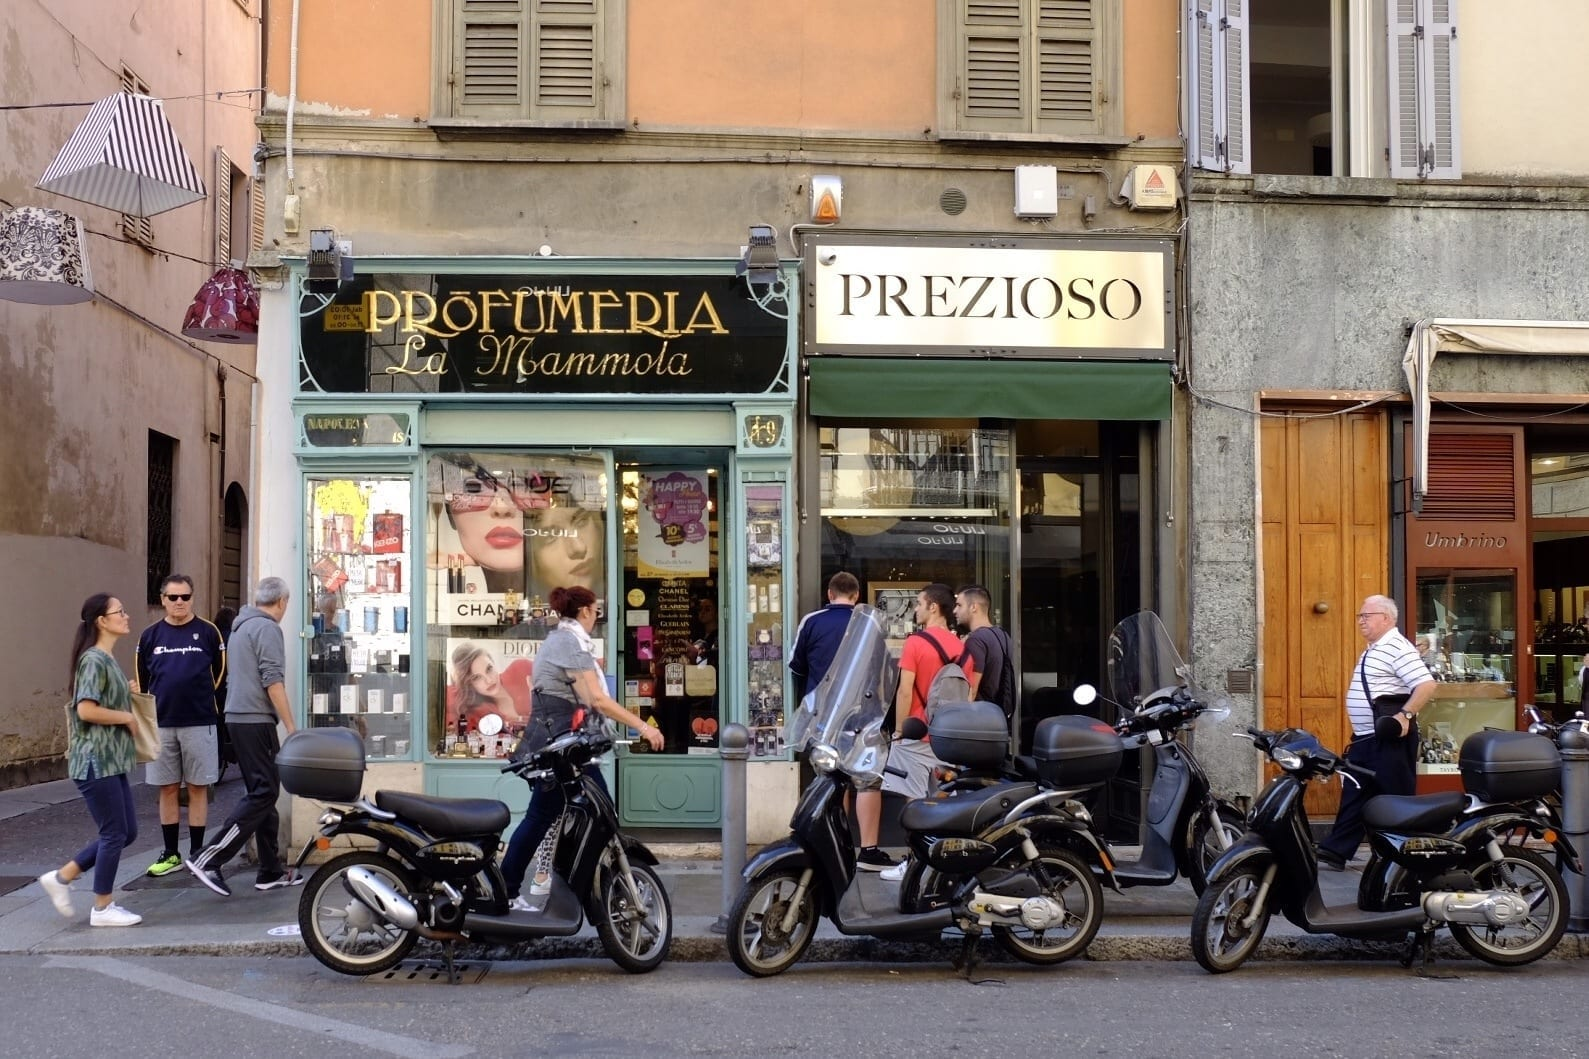 A street scene with old-fashioned stores with moss-green paint in Parma, Italy. Three motorbikes are parked in front of the stores and pedestrians are walking behind them.